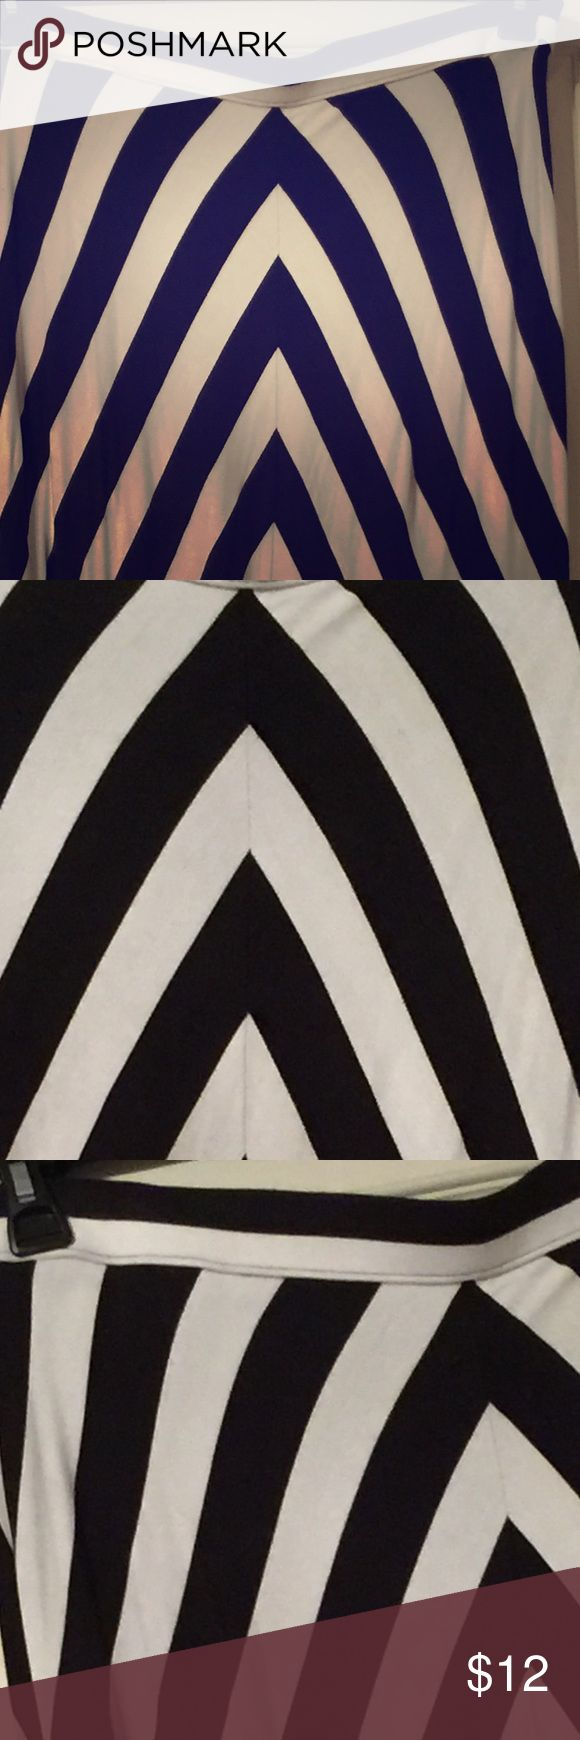 Jessica Simpson black and white  maxi skirt 1X Black and white chevron striped maxi skirt 1X Jessica Simpson Skirts Maxi